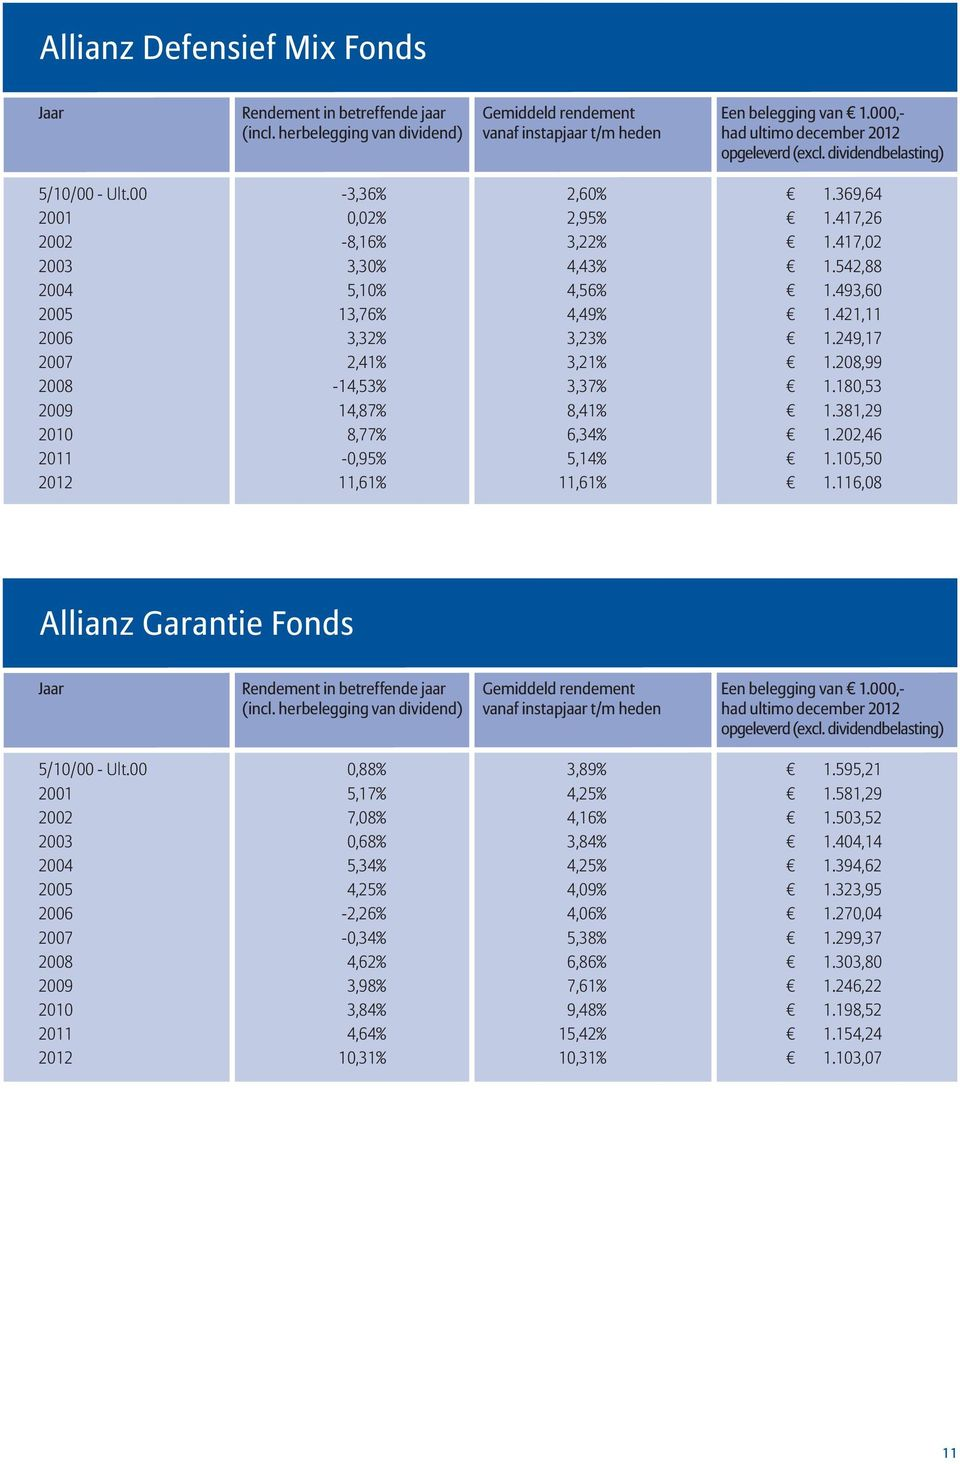 116,08 Allianz Garantie Fonds 5/10/00 - Ult.00 0,88% 3,89% 1.595,21 2001 5,17% 4,25% 1.581,29 2002 7,08% 4,16% 1.503,52 2003 0,68% 3,84% 1.404,14 2004 5,34% 4,25% 1.394,62 2005 4,25% 4,09% 1.